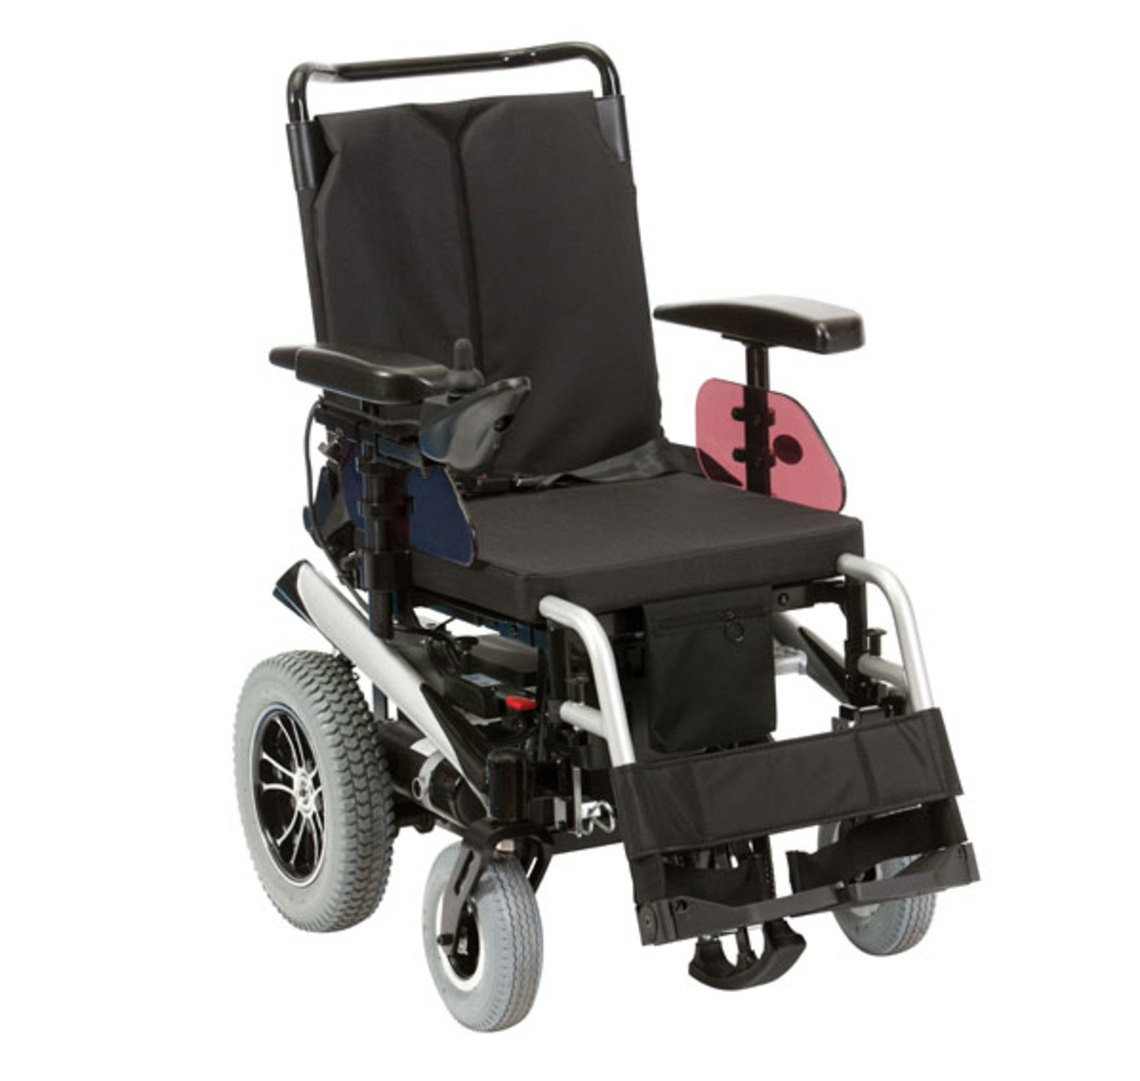 Days volt electric wheelchair at low prices uk wheelchairs for Cost of motorized wheelchair